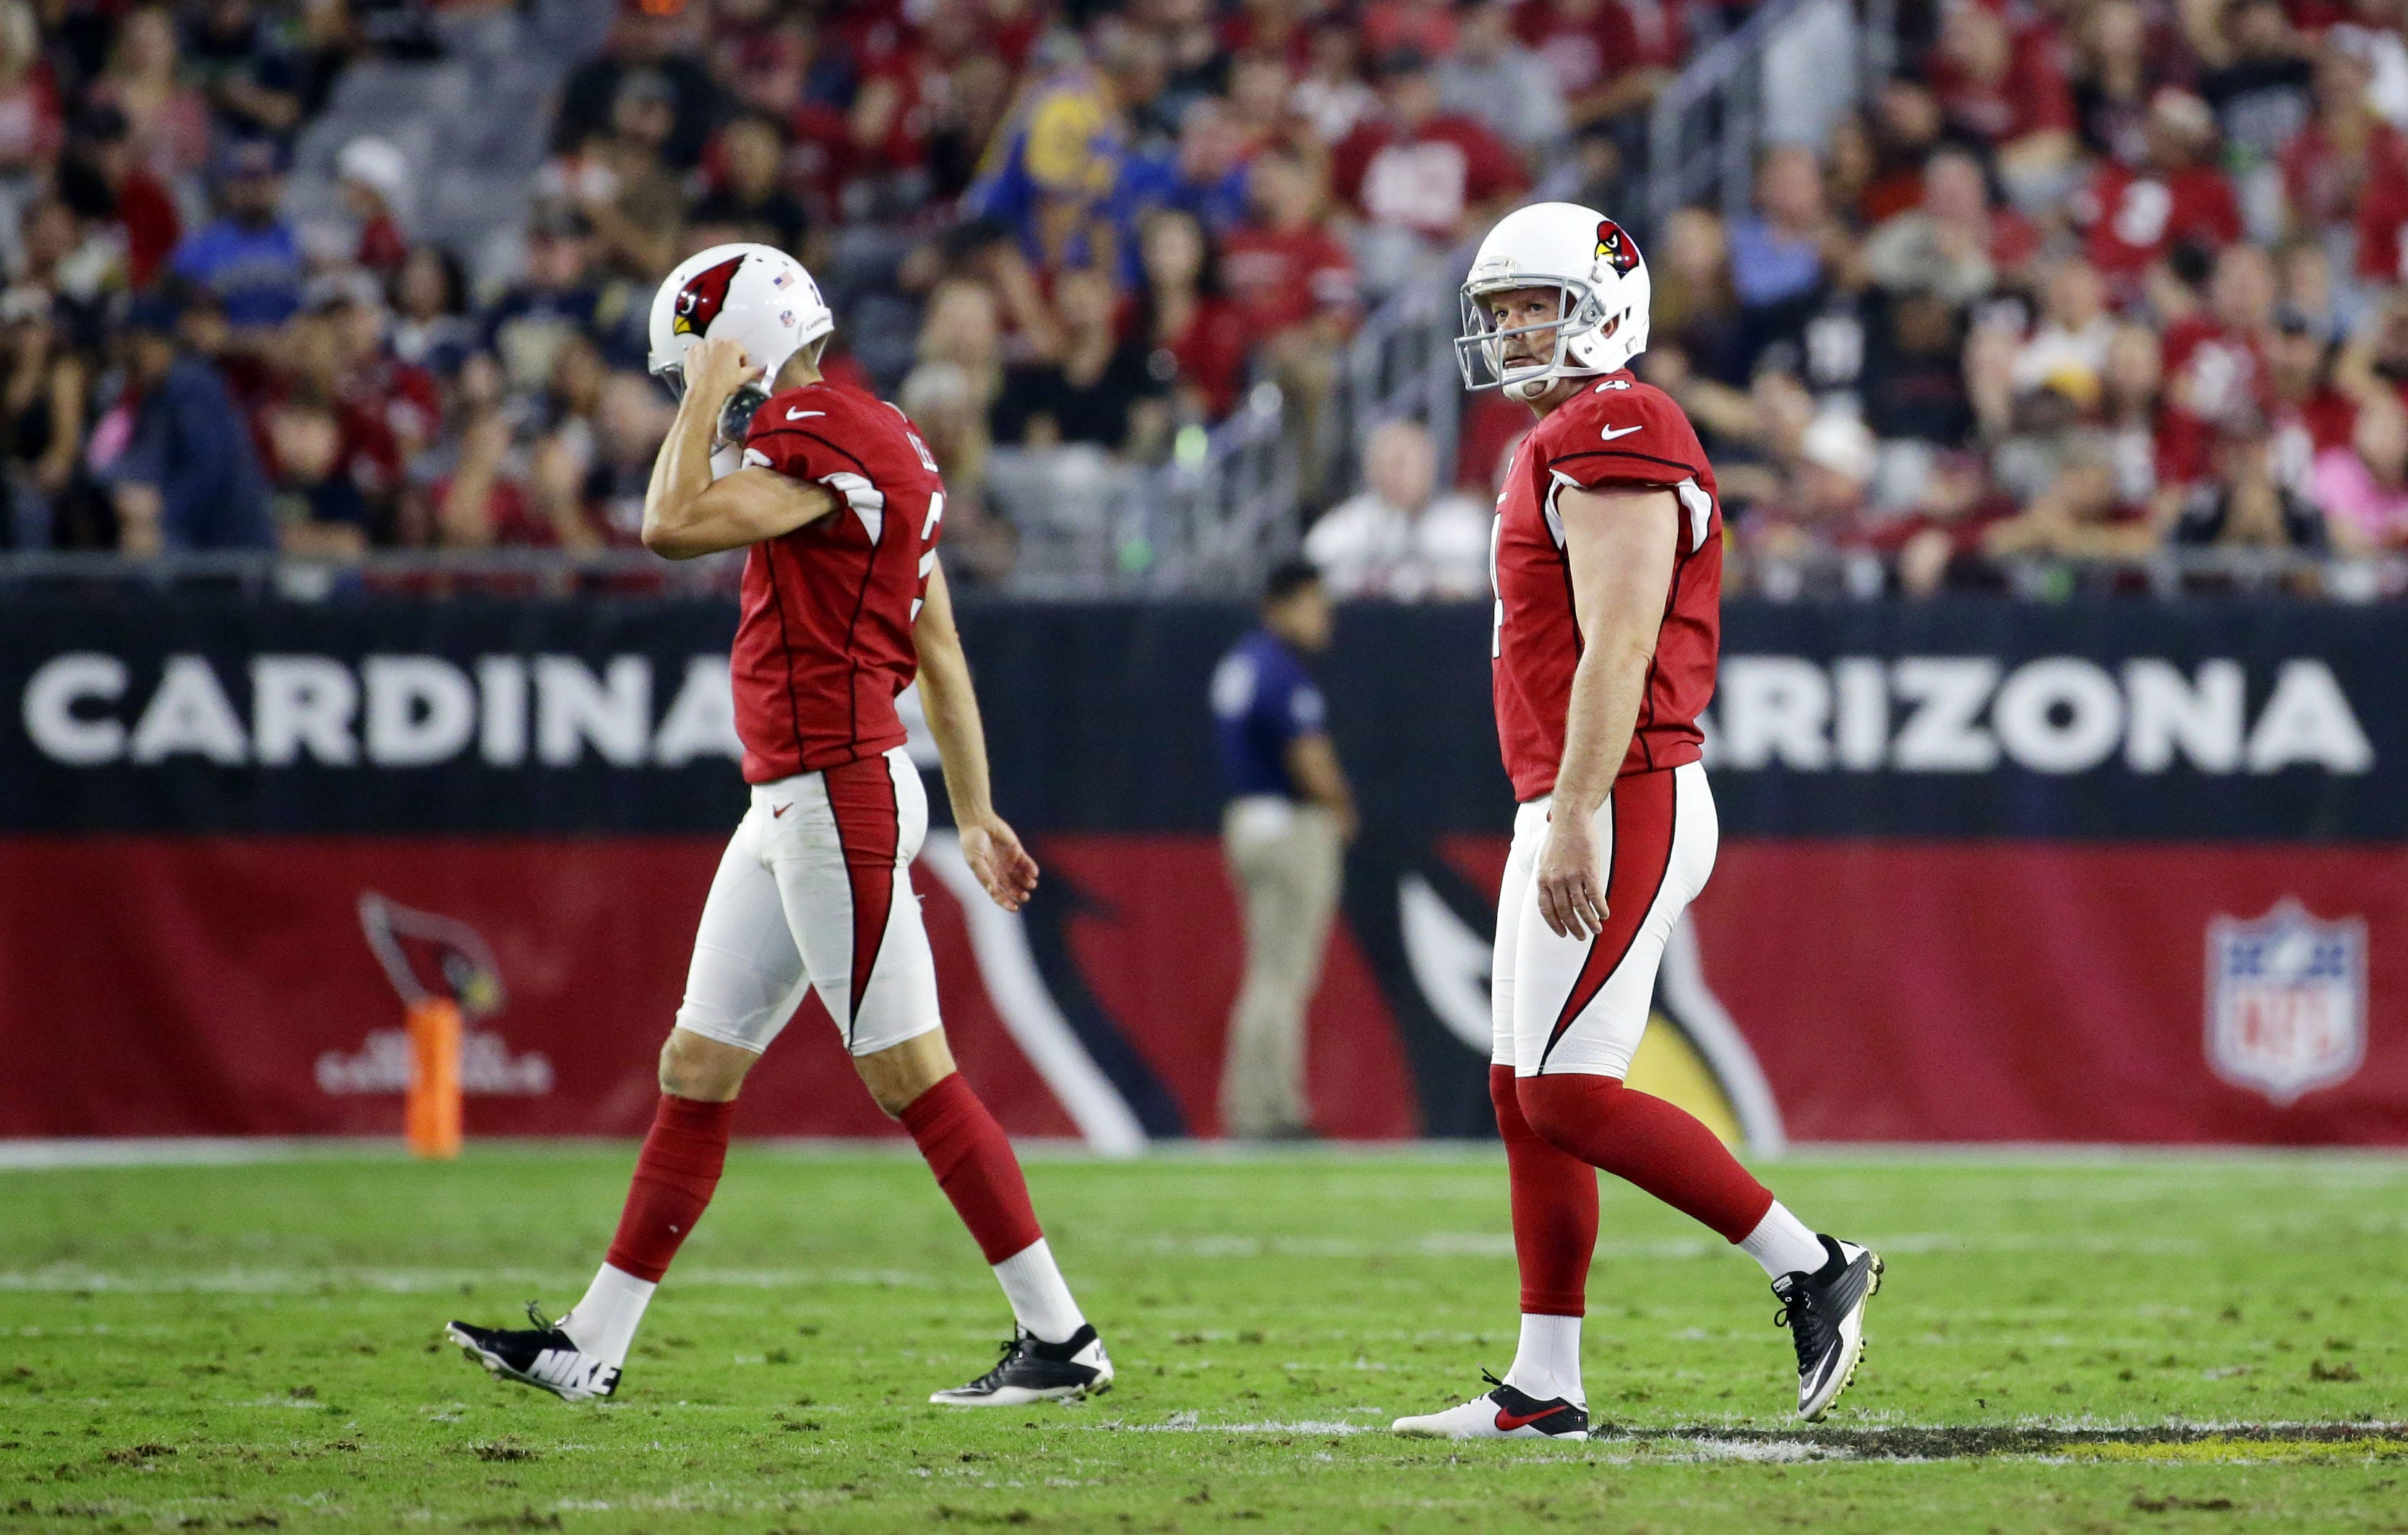 Arizona Cardinals Phil Dawson reacts after his field